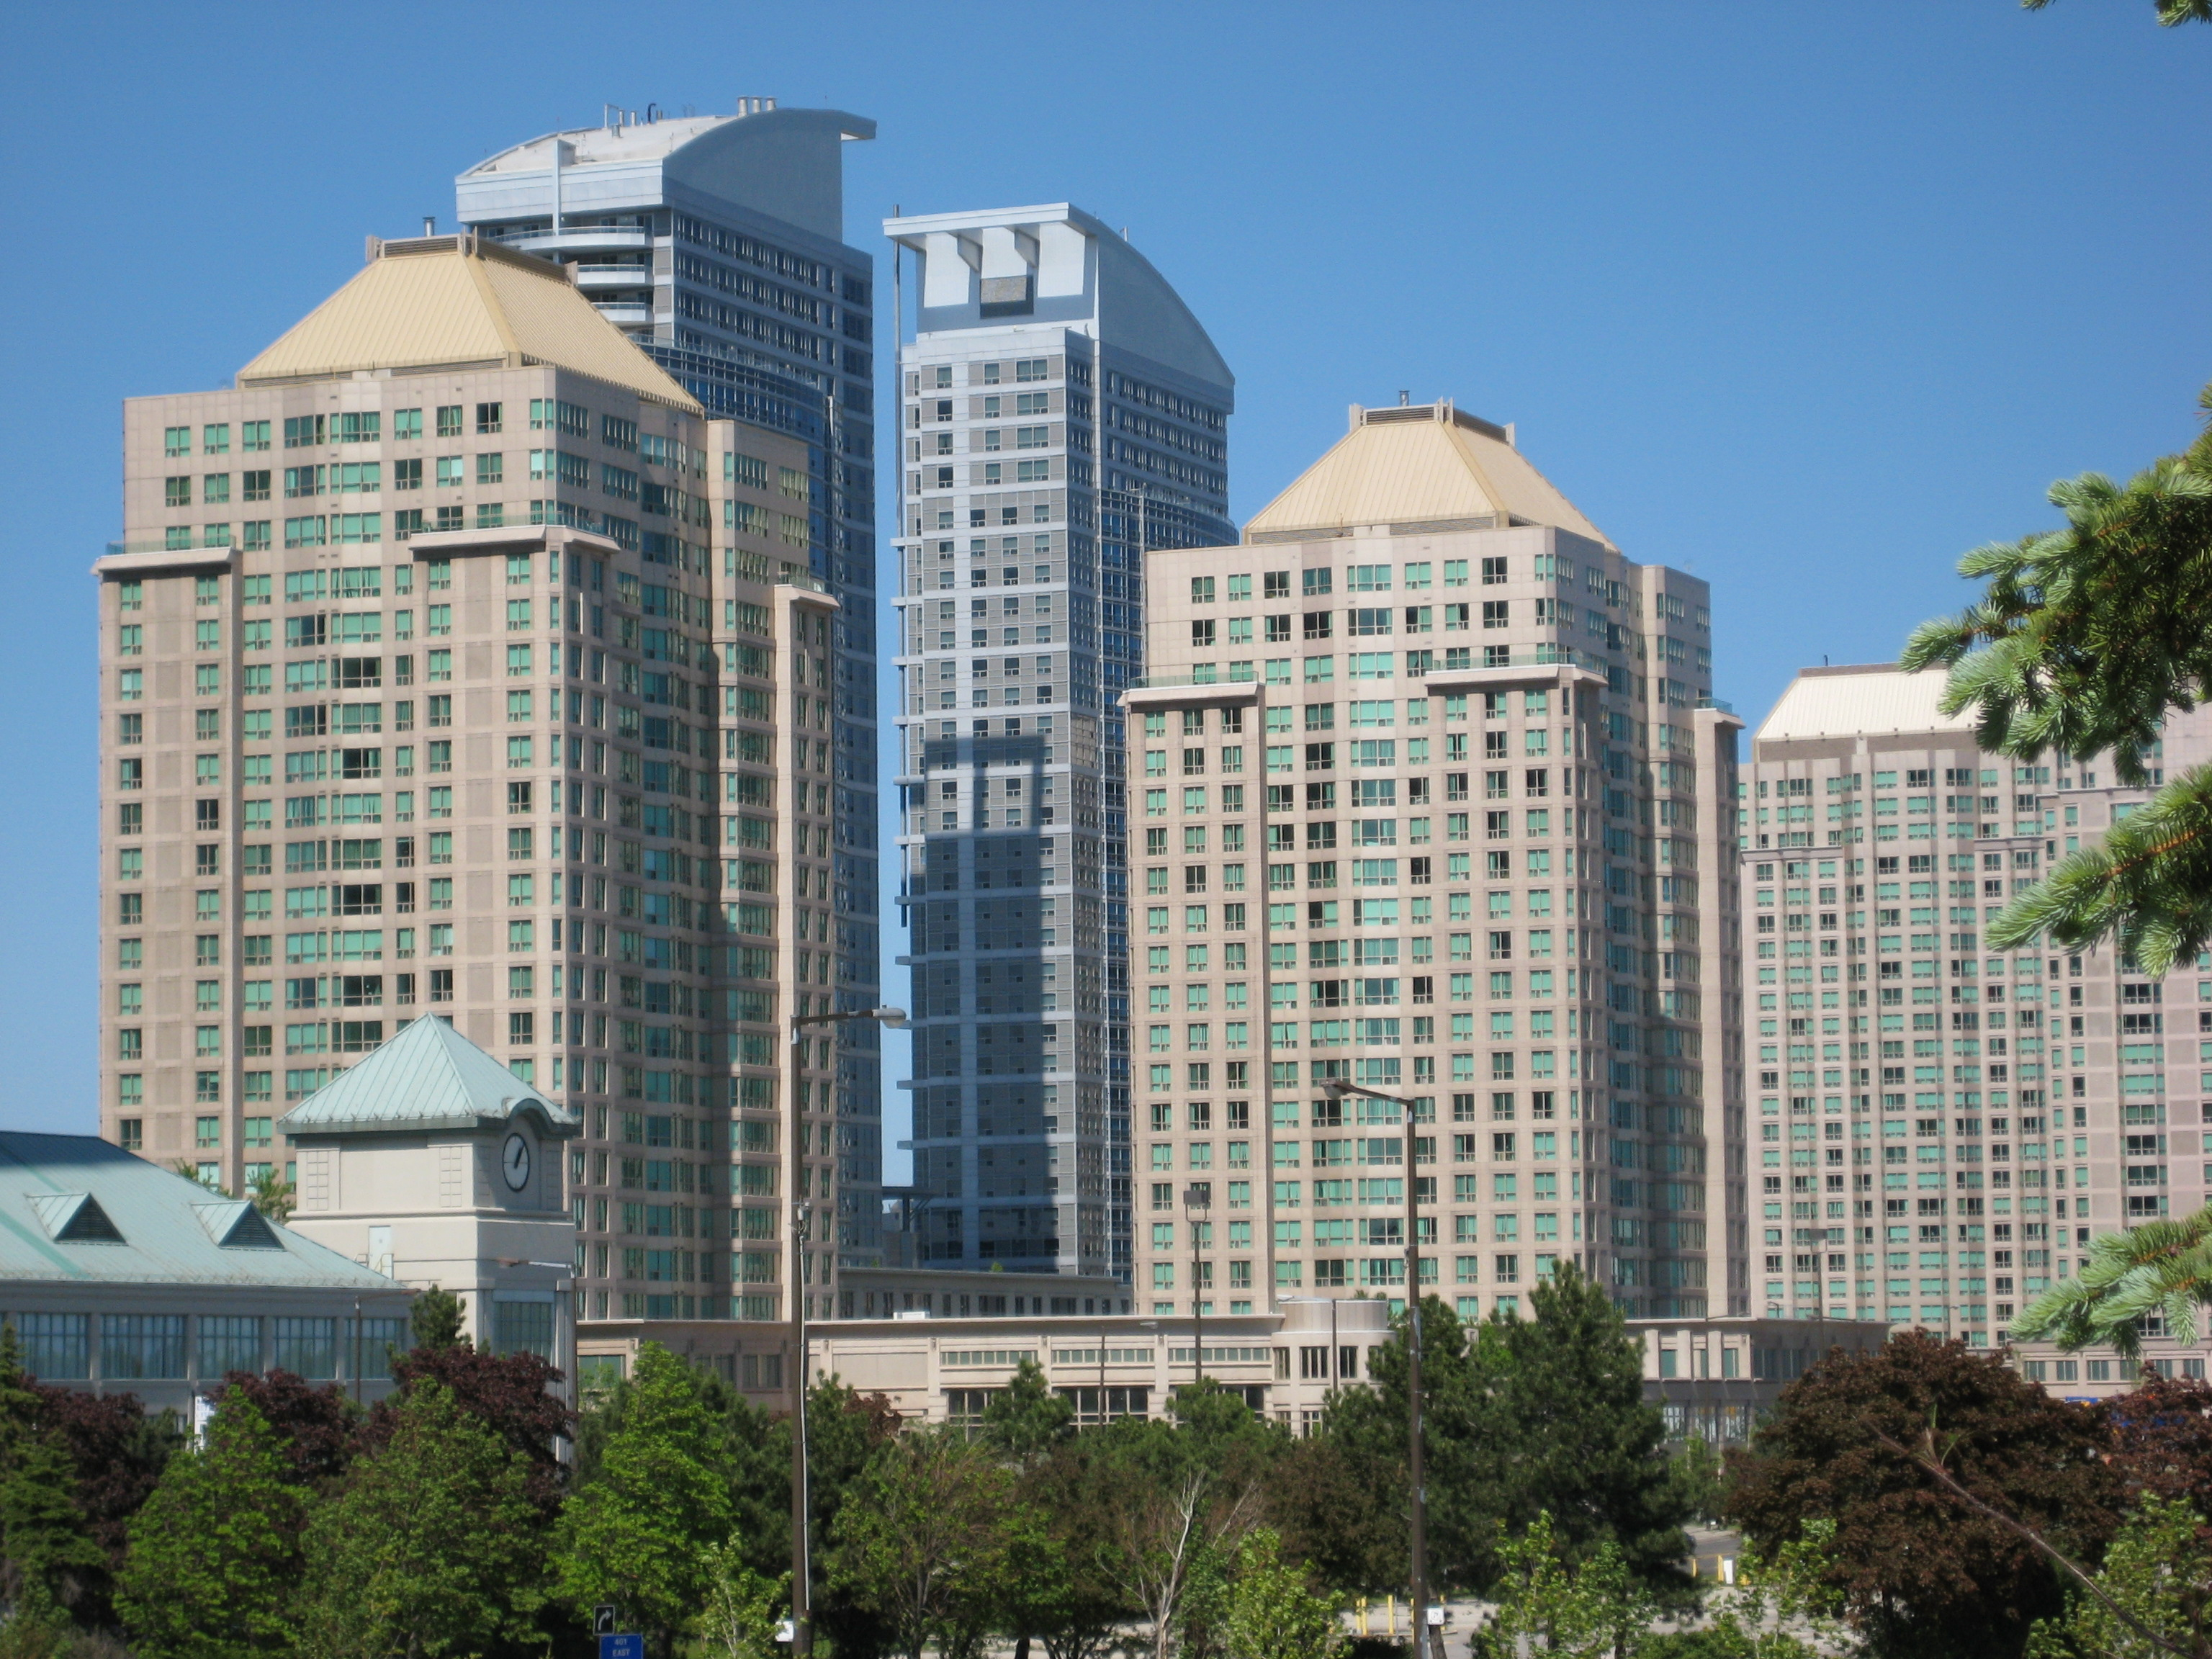 Skyline of Scarborough City Centre